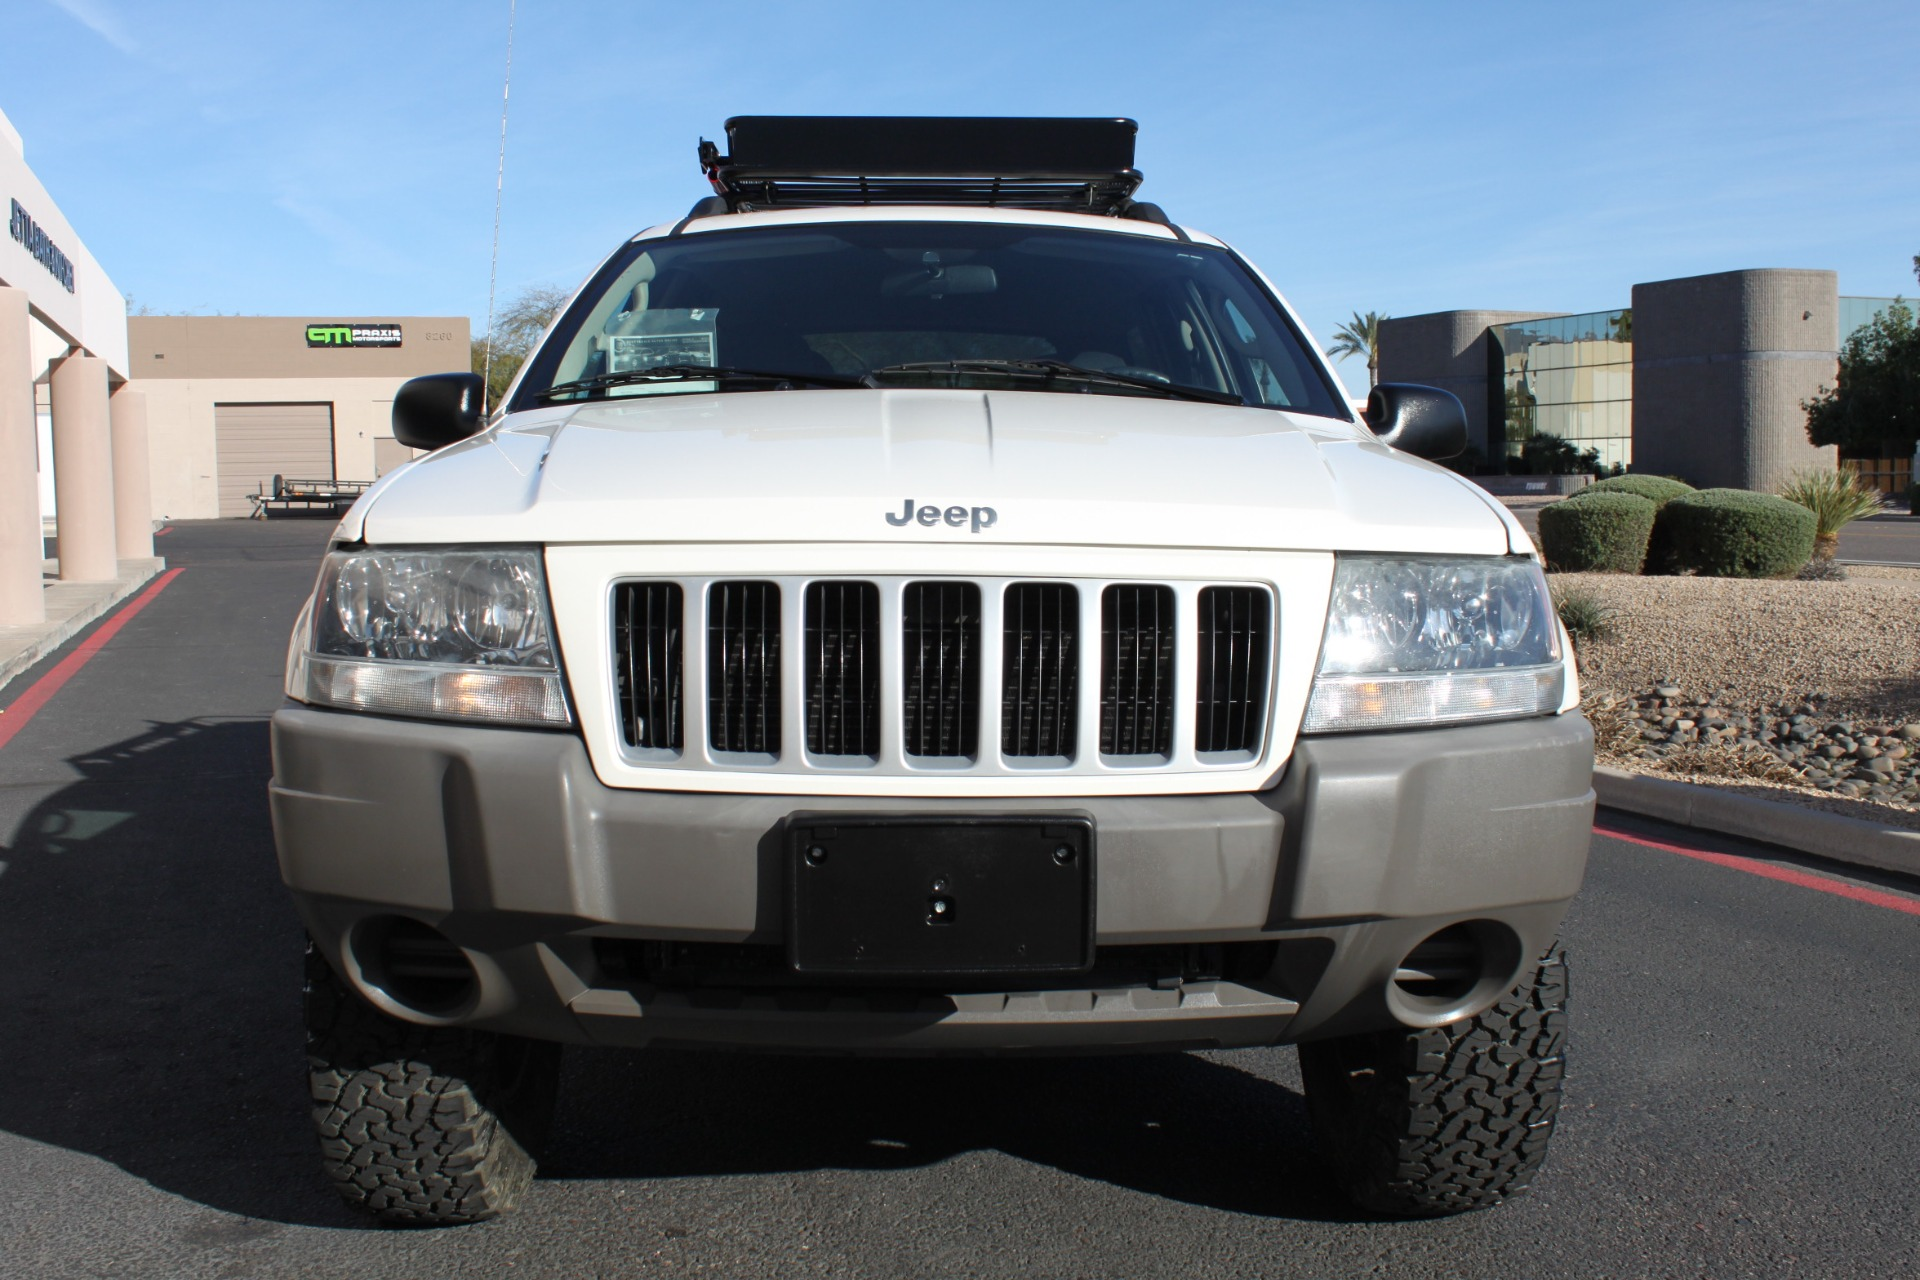 Used-2004-Jeep-Grand-Cherokee-Laredo-Wrangler